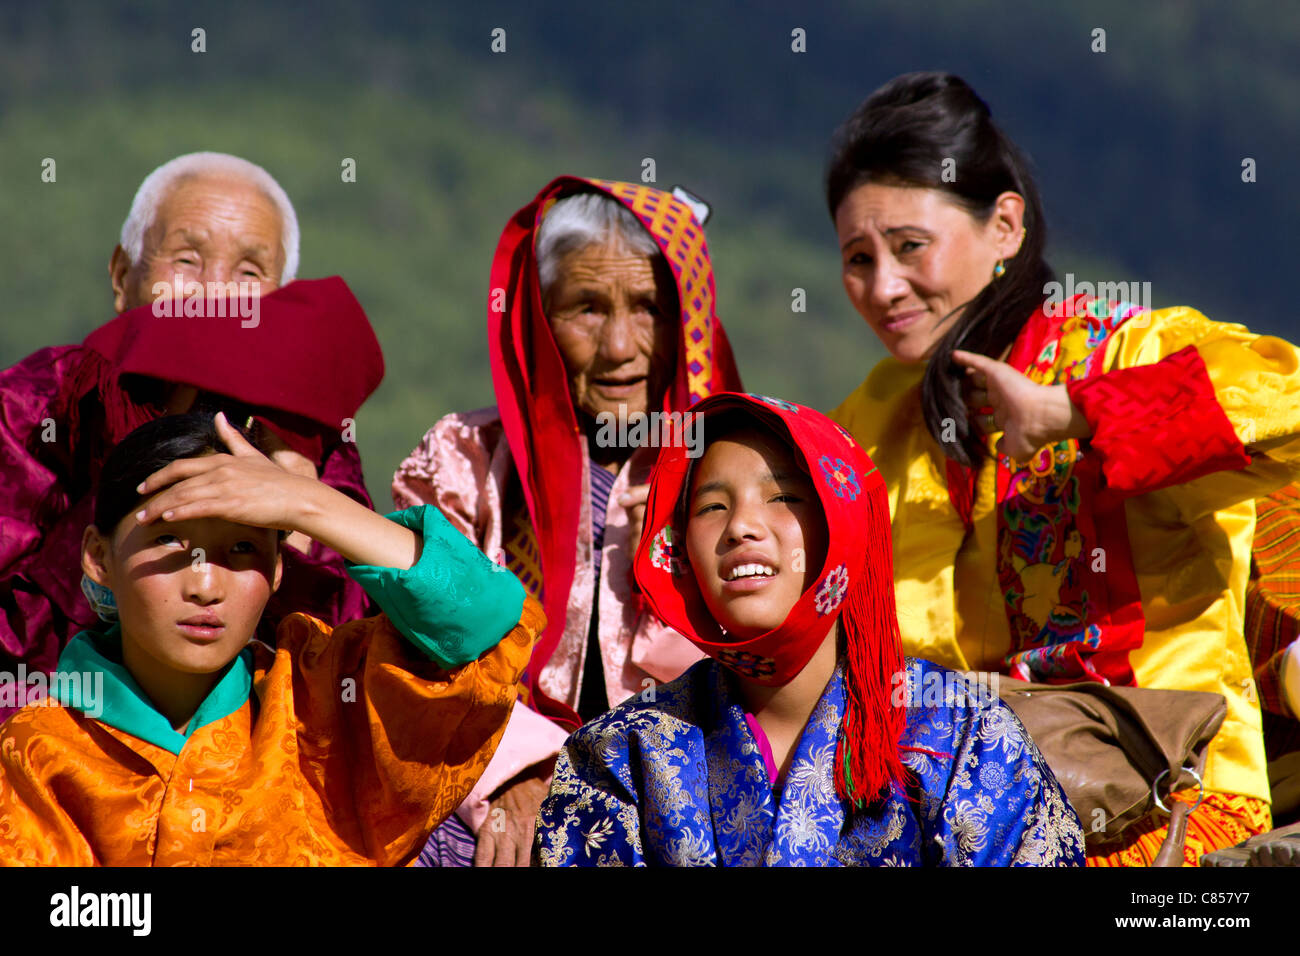 Colorful people of  Bhutan in colorful tradition clothes during Thimphu festival - Stock Image